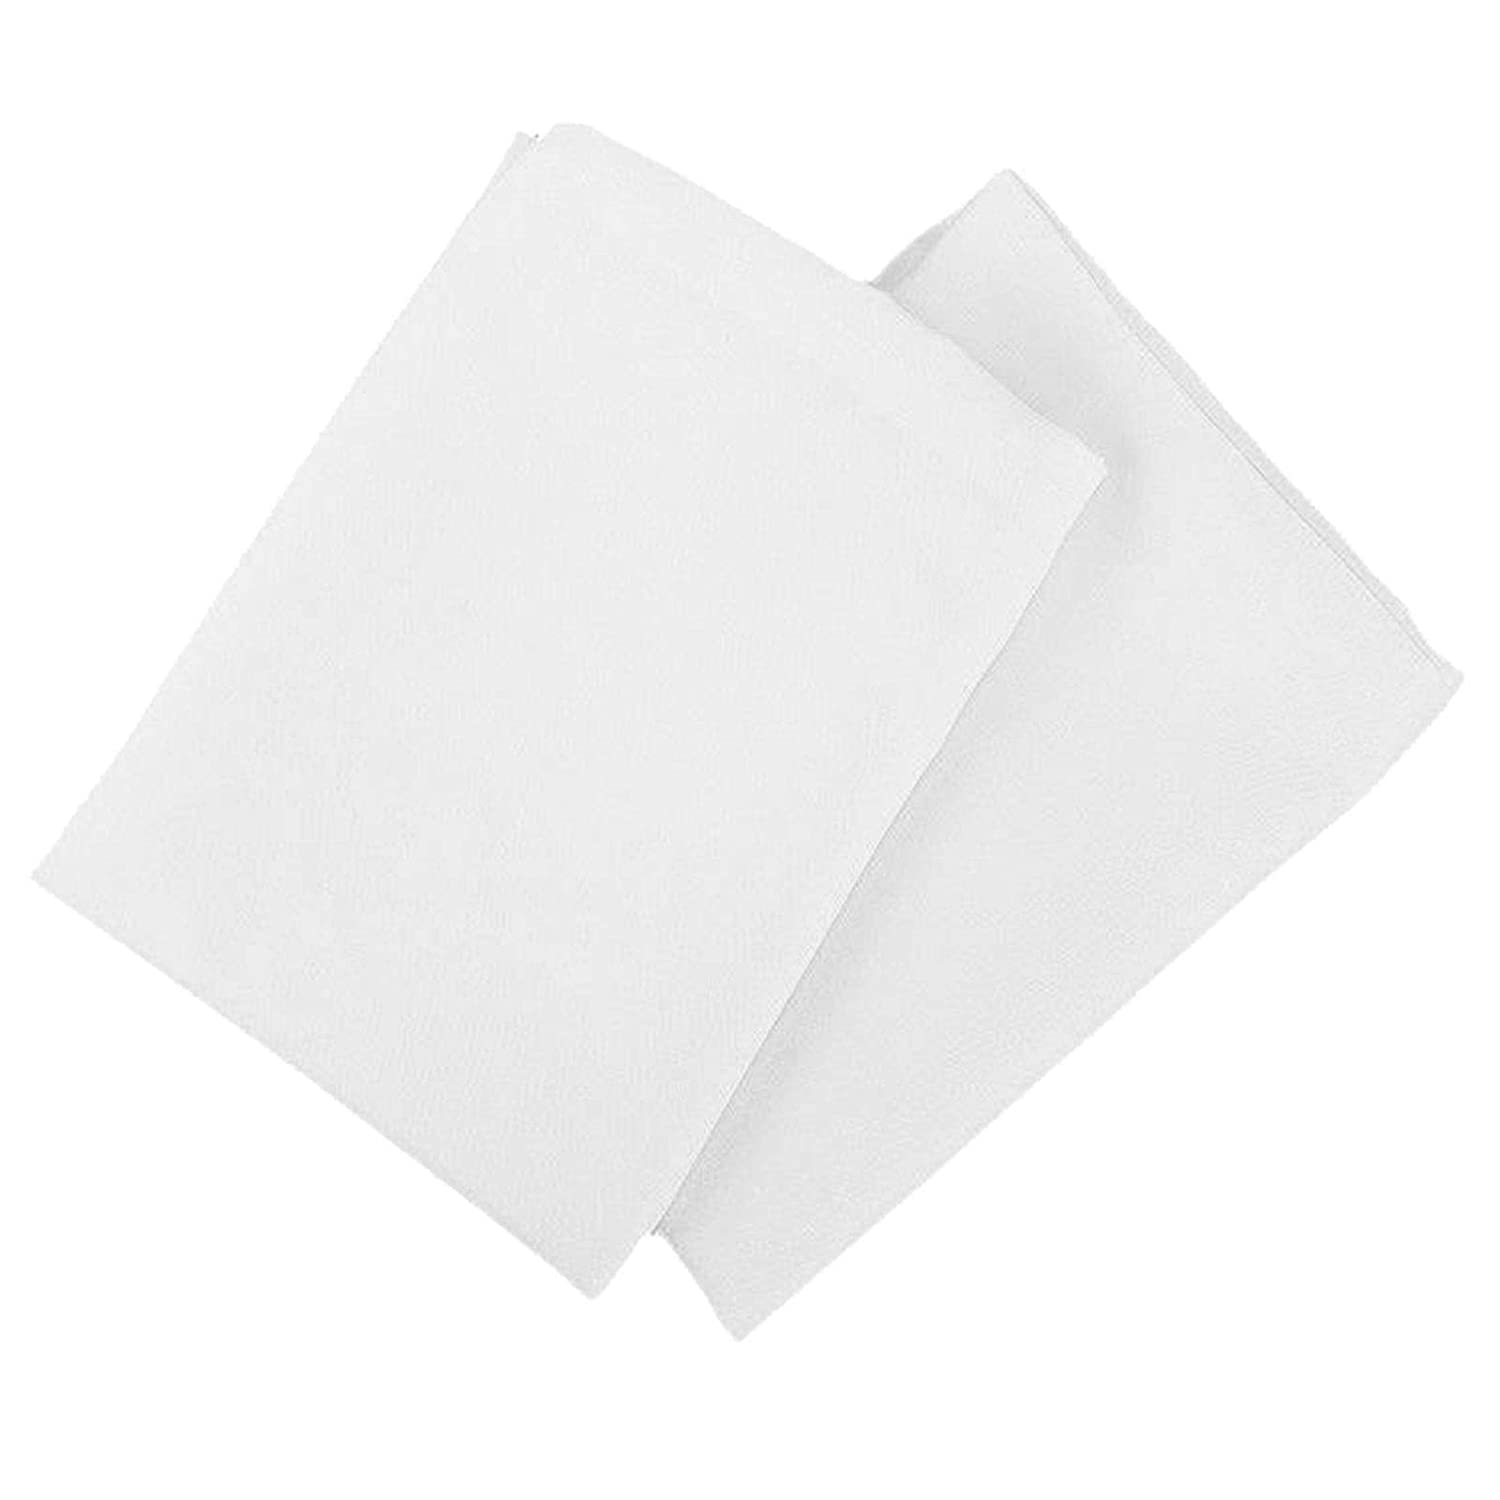 QPC Direct Pair of Zipped Waterproof Dust Mite Proof Pillow Guard Protectors White